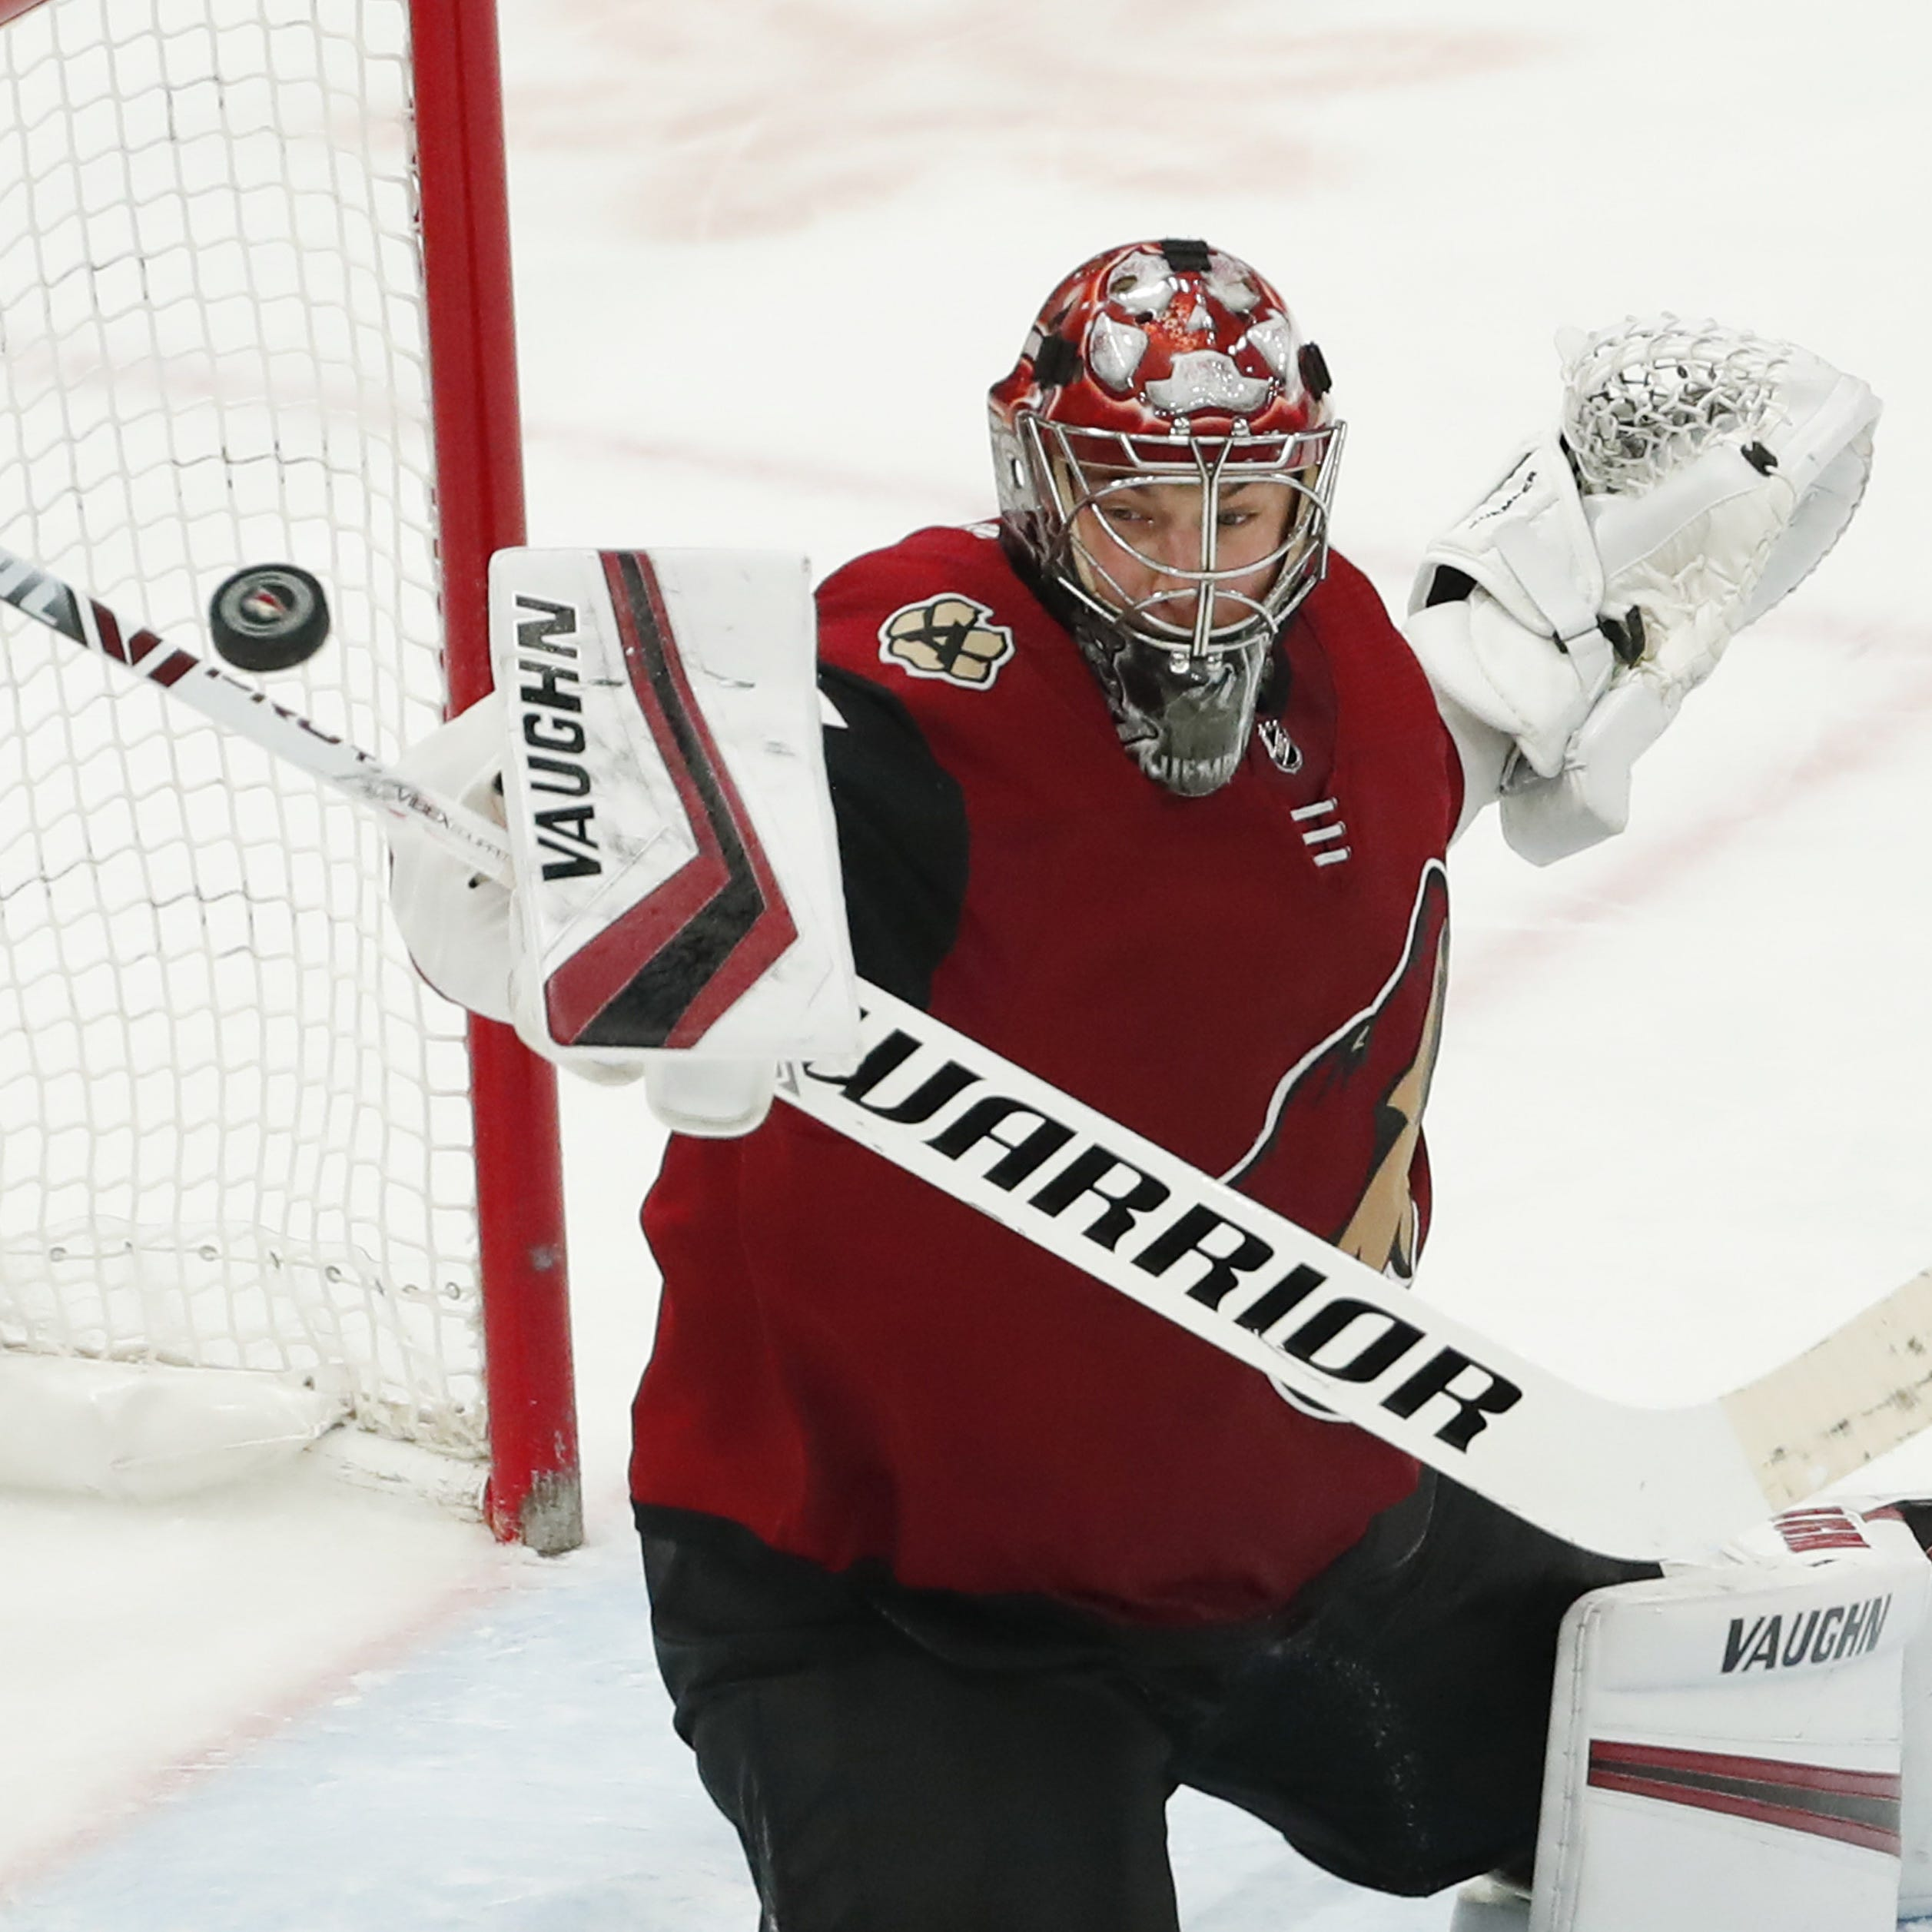 'The heartbeat of our team': Iron man Darcy Kuemper keeps Coyotes' playoff push alive with shutout of Wild